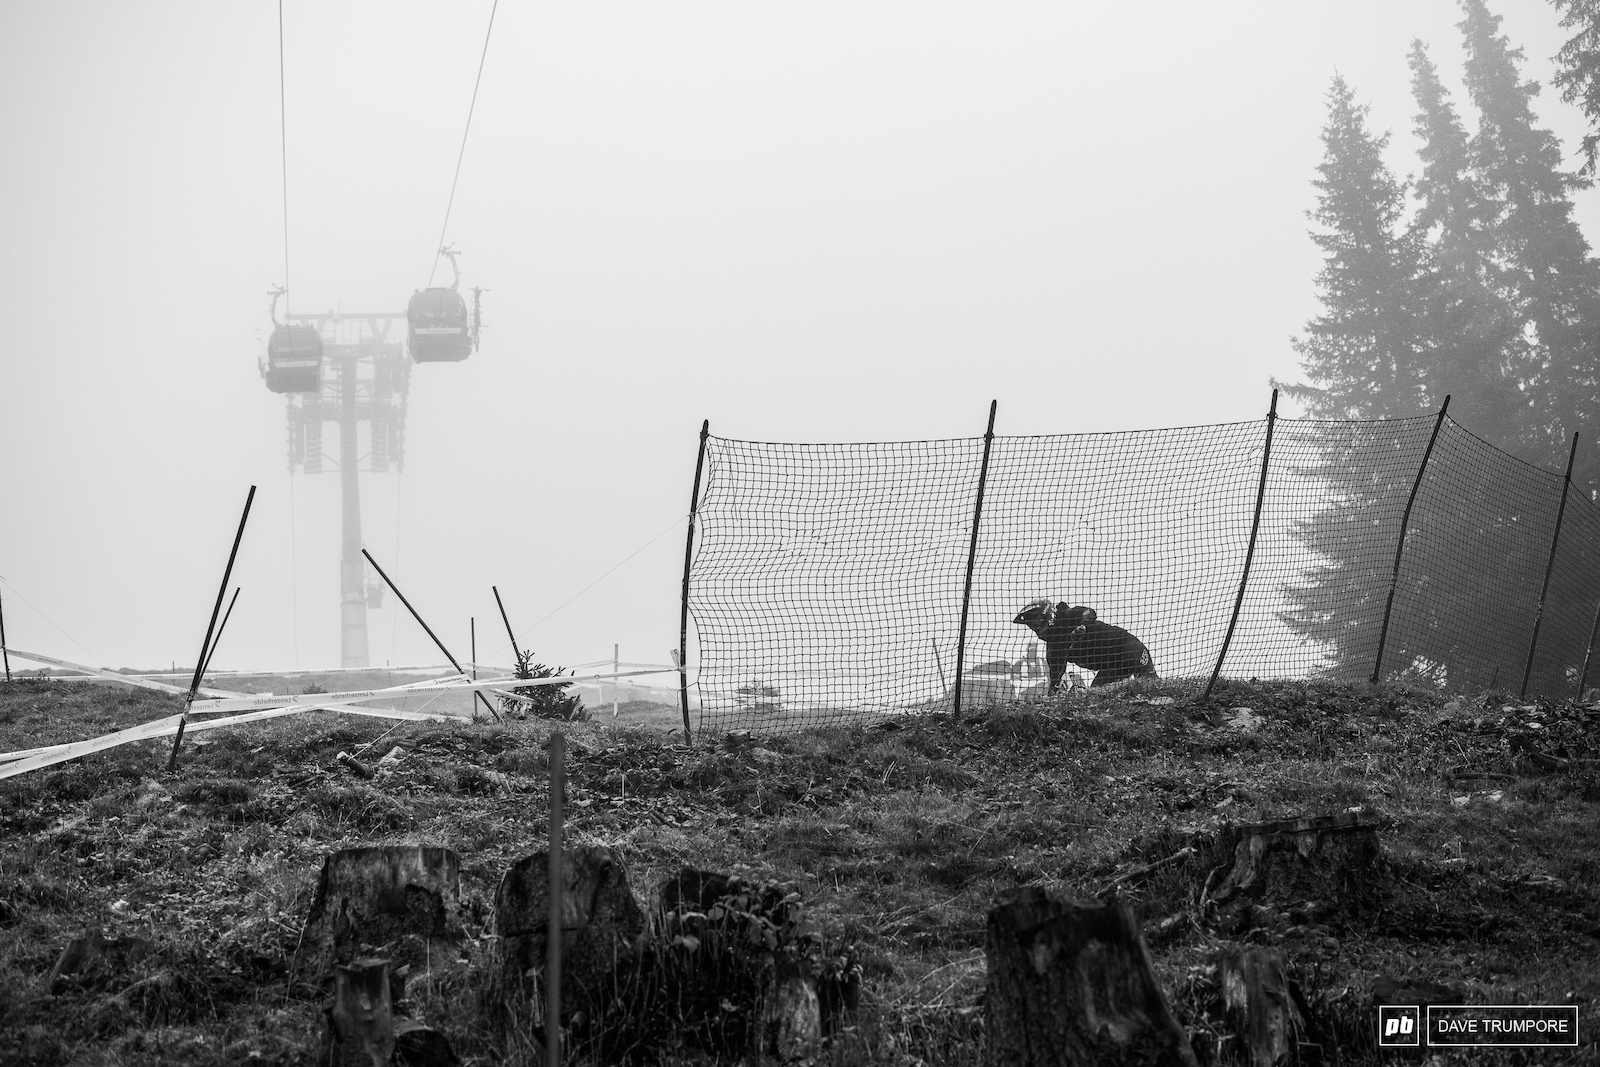 cold wet and foggy to start the day in Lenzerheide.